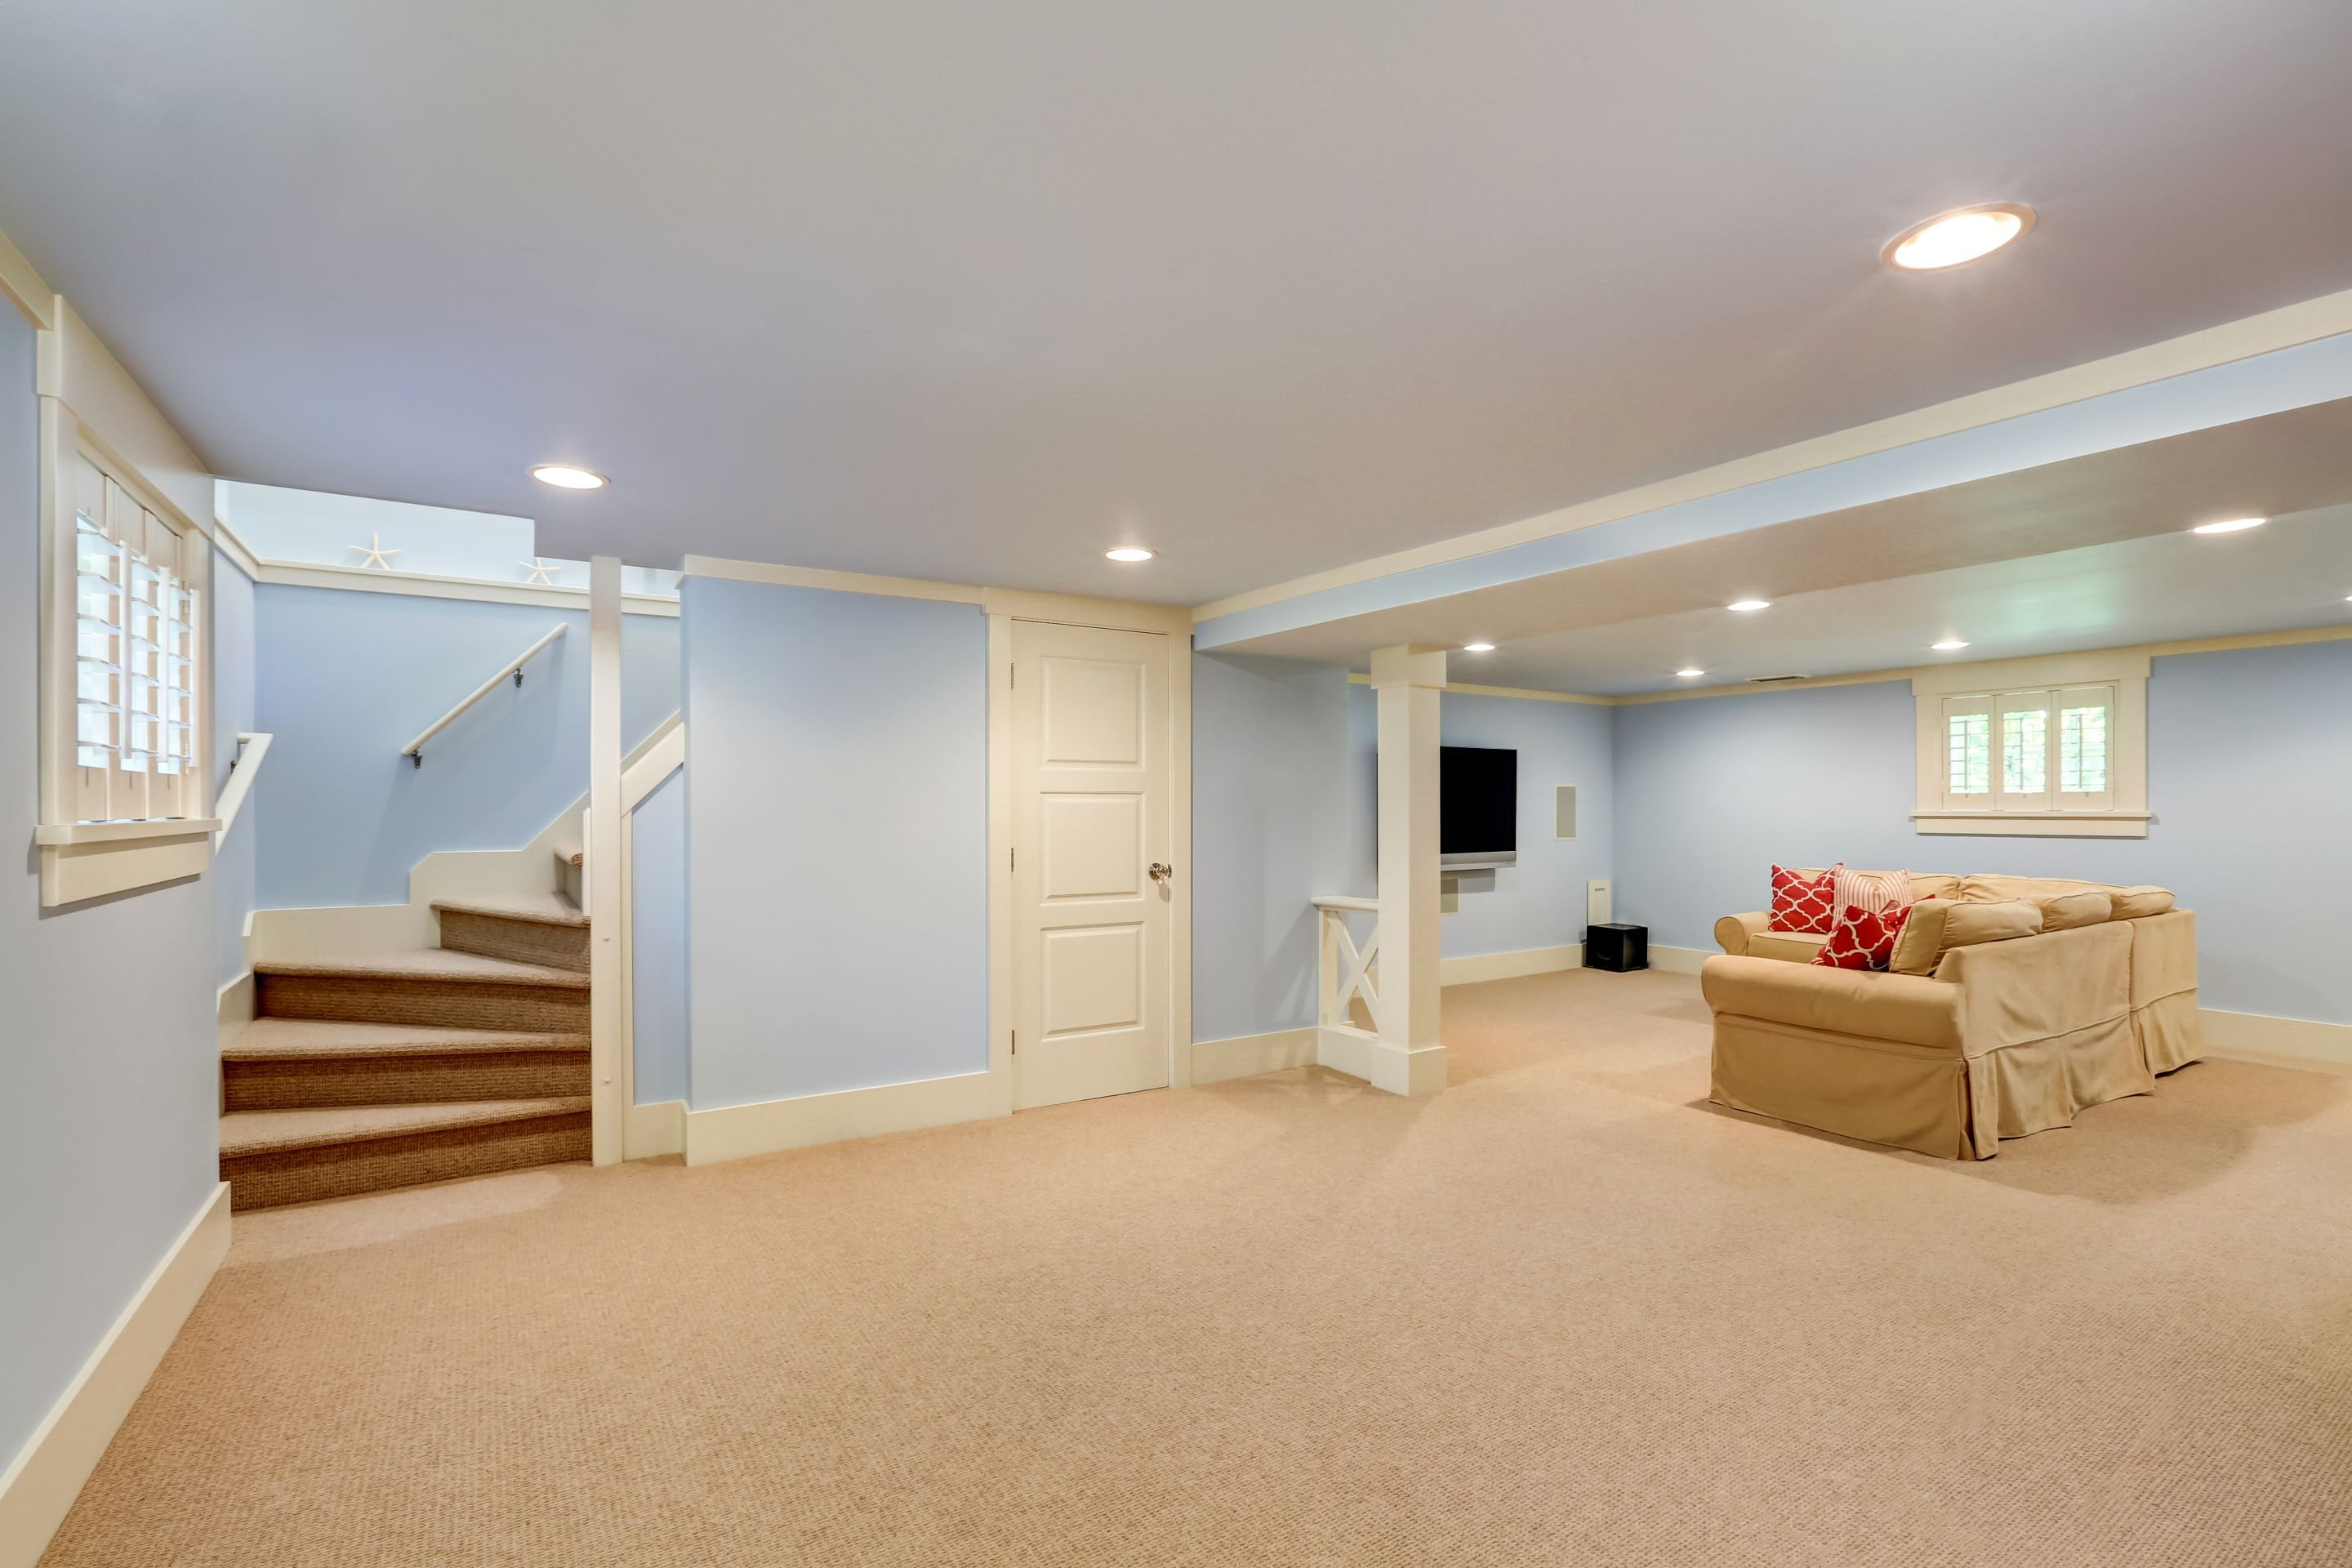 12 Great Ideas For Remodeling The Basement Tips You Can Use